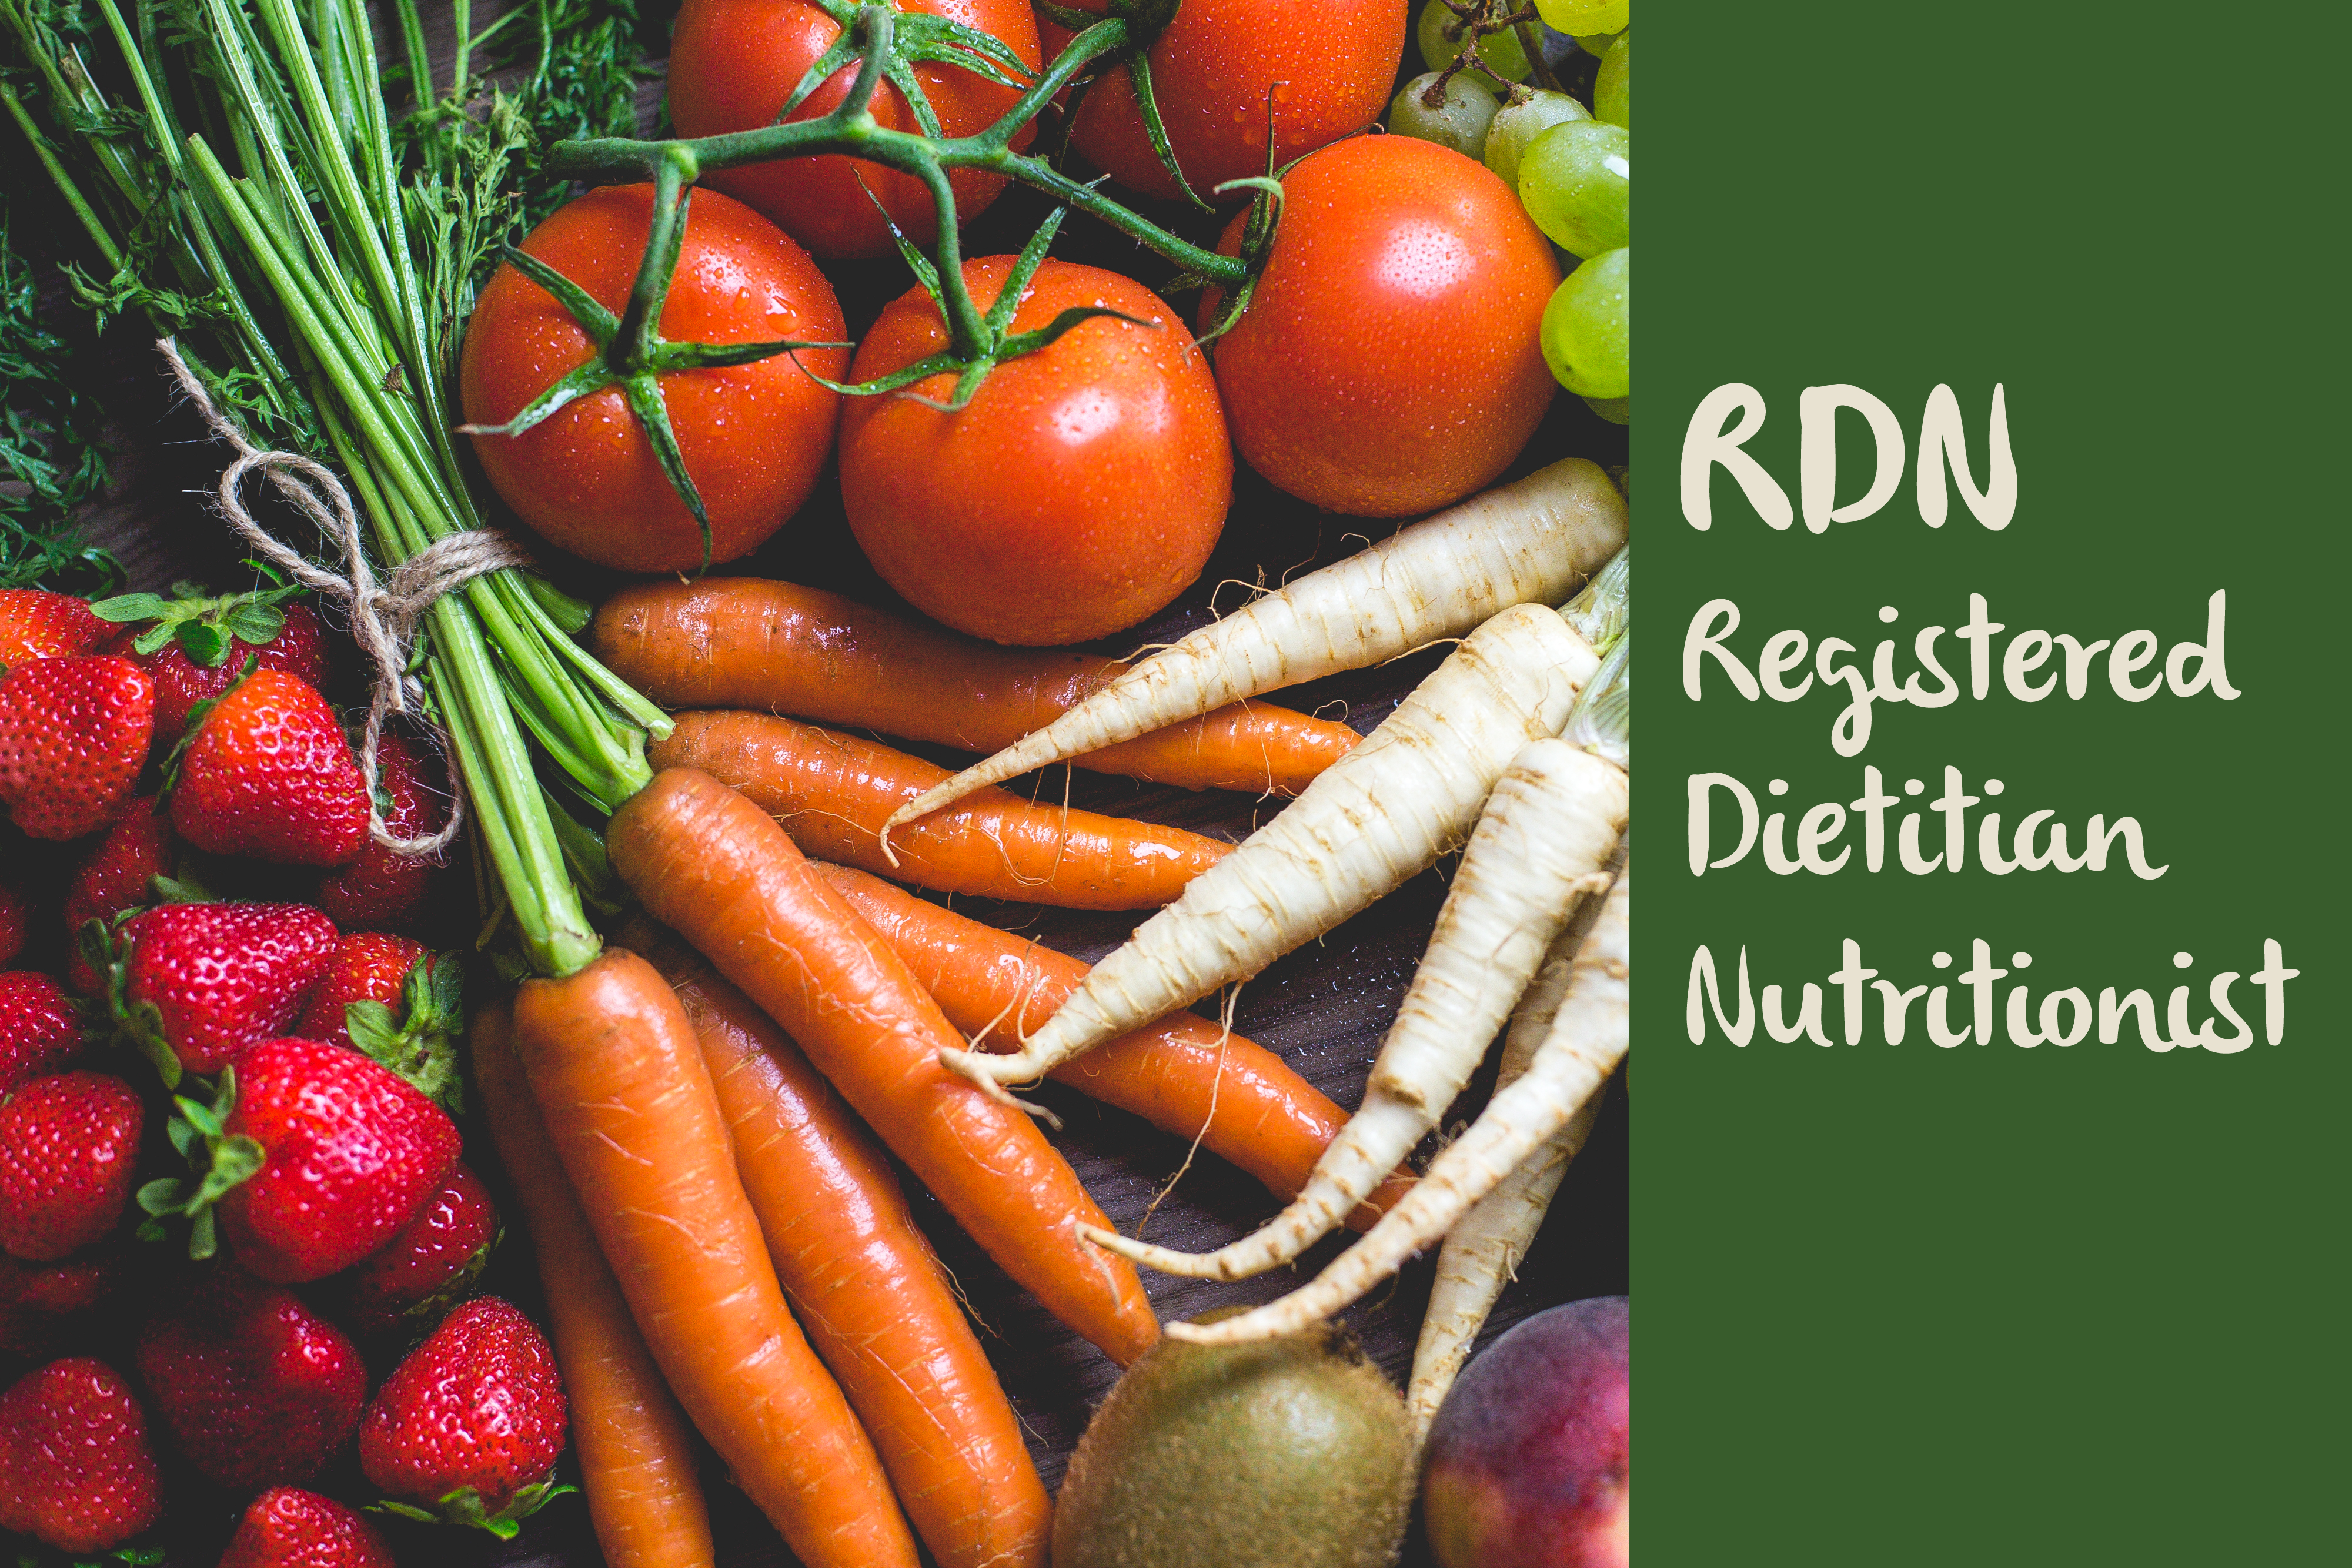 Photo of fruits and vegetables with the text: RDN Registered Dietitian Nutritionist